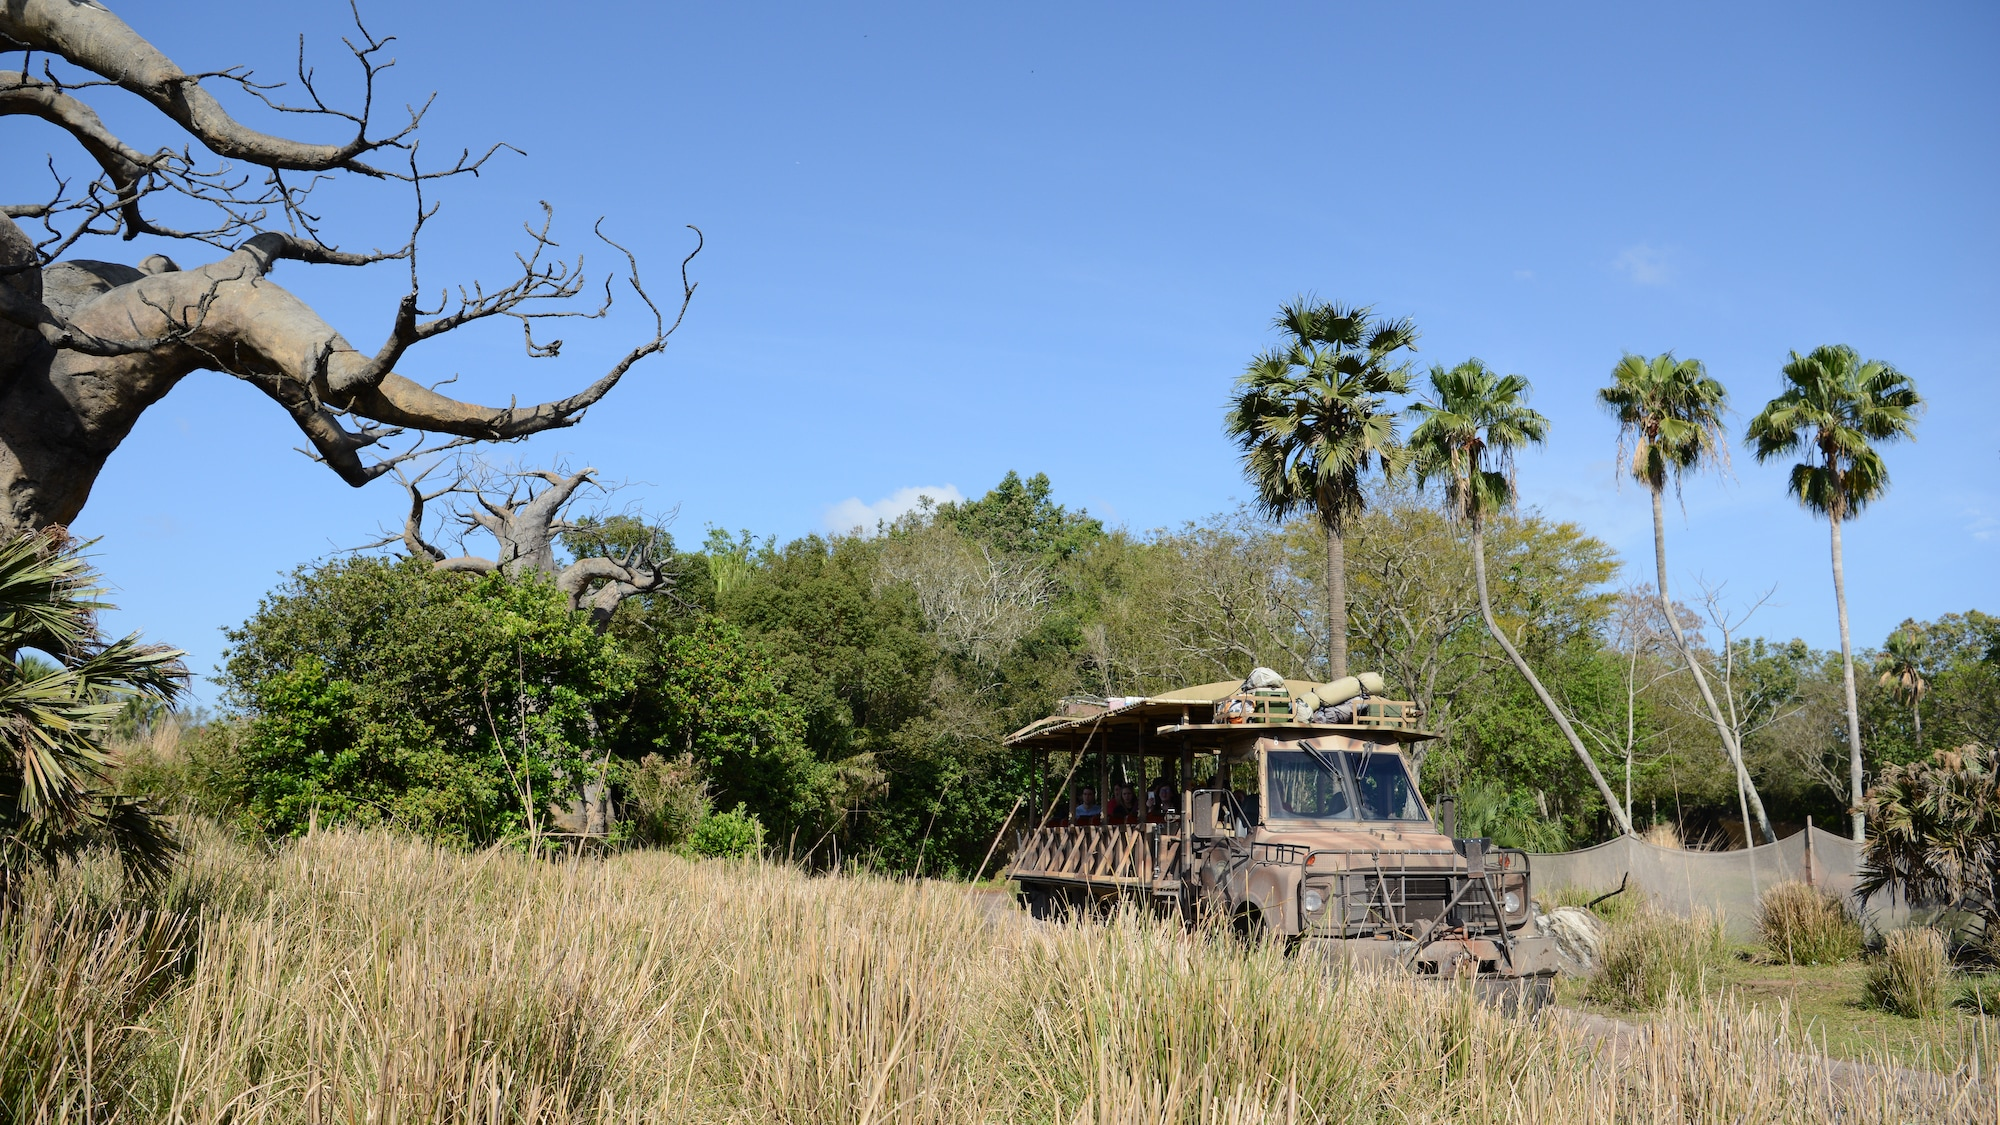 Kilimanjaro Safaris vehicle taking guests on a guided tour of the Harambe Wildlife Reserve. (National Geographic/Gene Page)